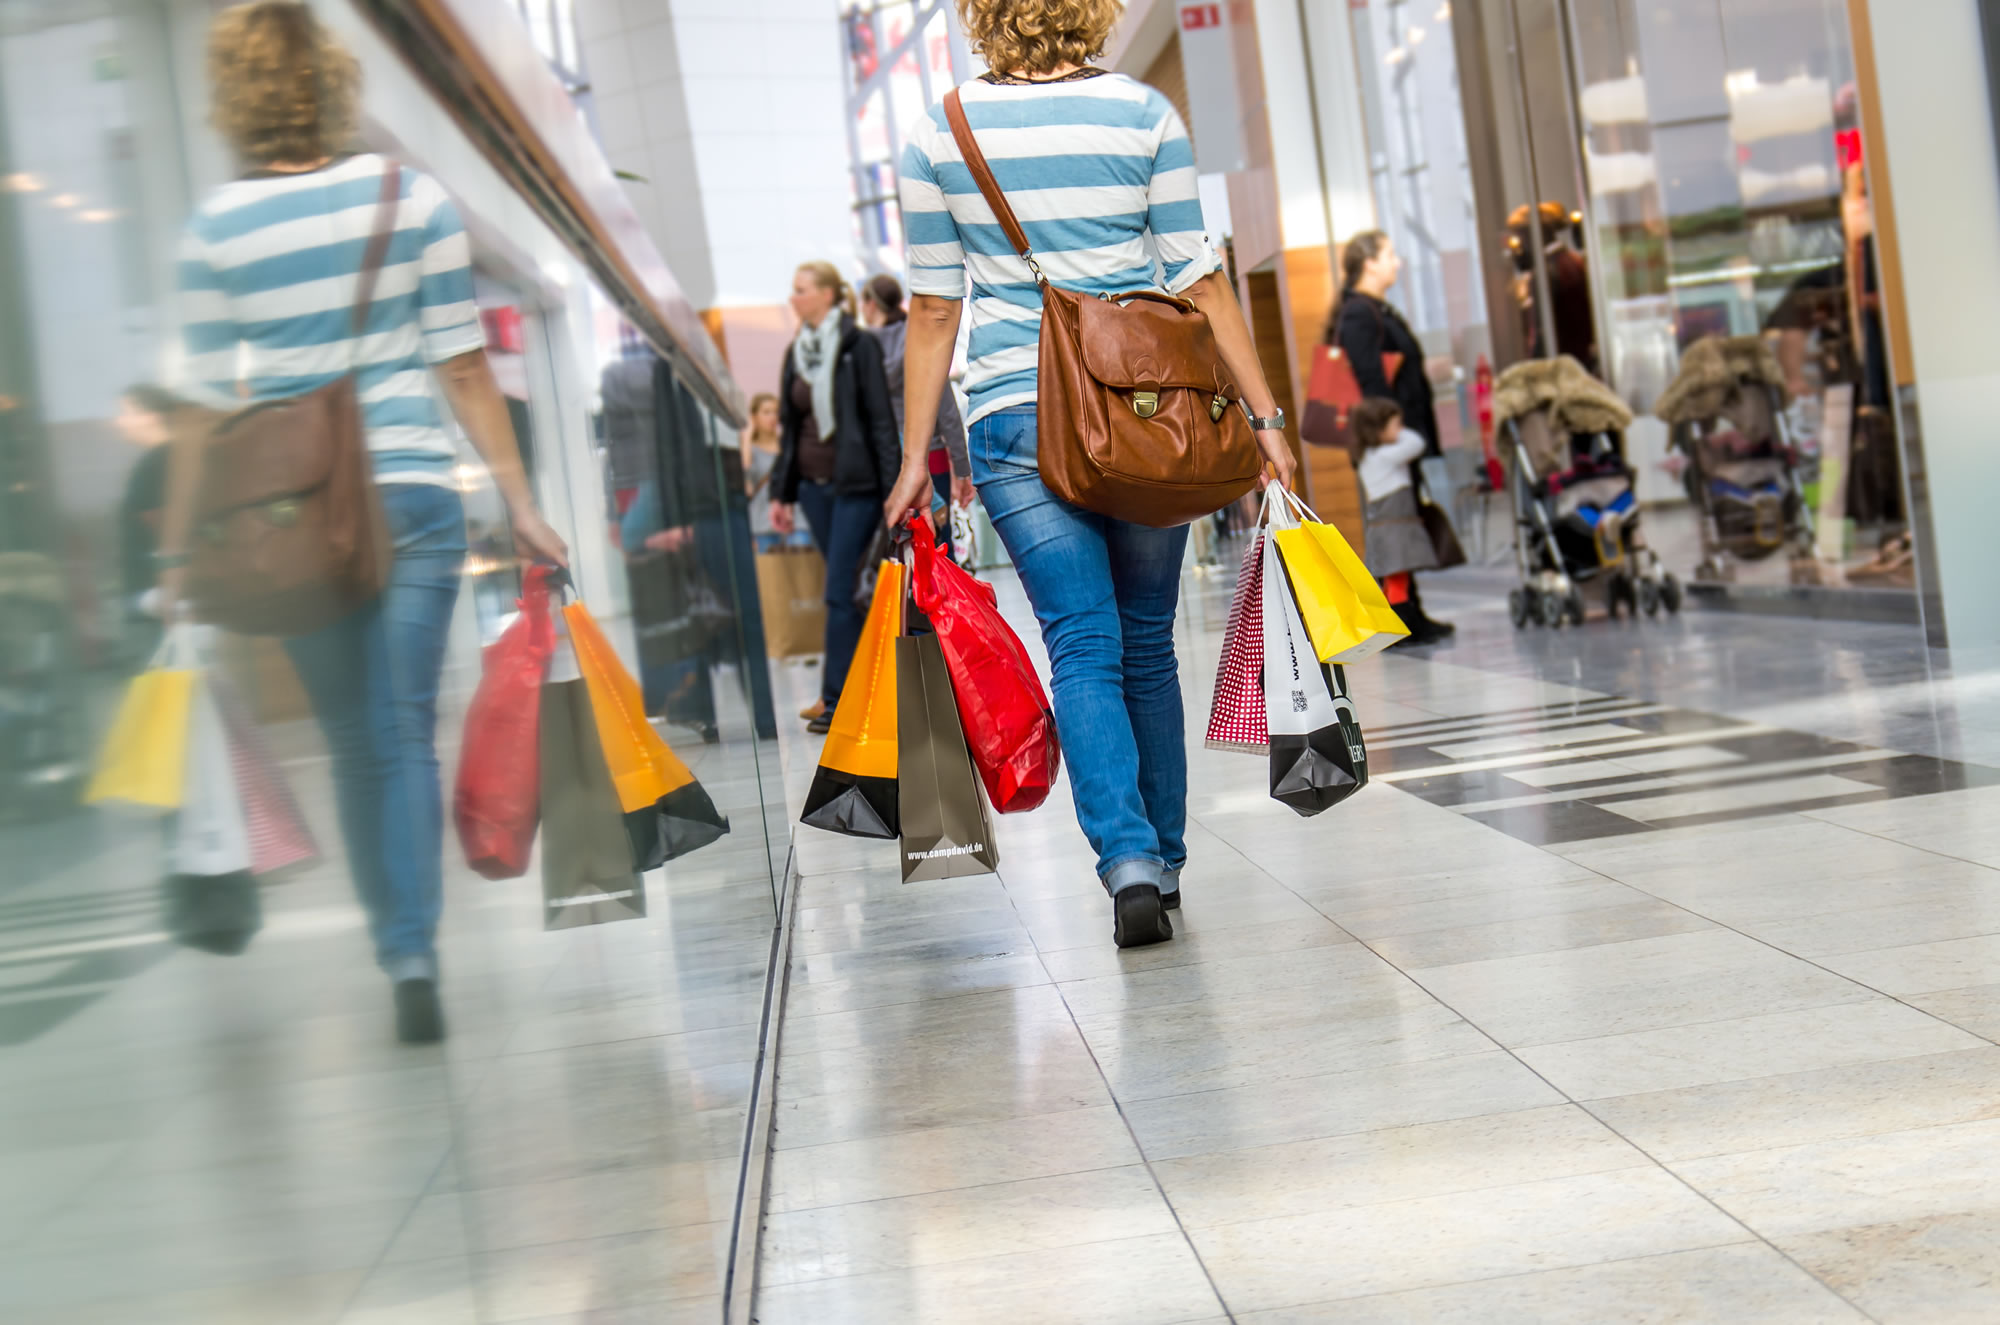 Shopping Centre Accident, Slip compensation, Public liability claims, fall in supermarket claim solicitors Aberdeen